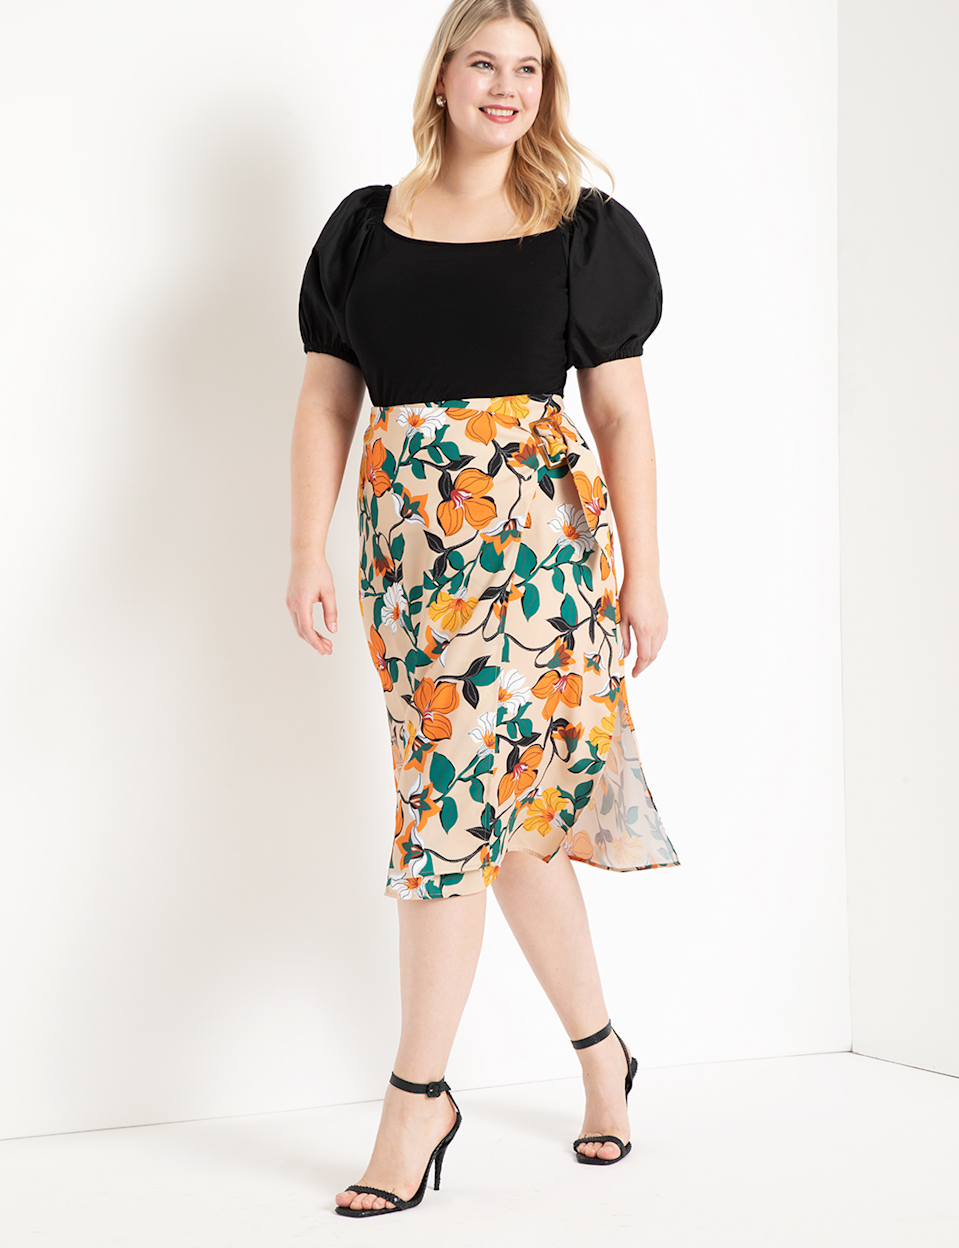 """<br> <br> <strong>Eloquii</strong> Buckle Detail Midi Skirt, $, available at <a href=""""https://go.skimresources.com/?id=30283X879131&url=https%3A%2F%2Fwww.eloquii.com%2Fbuckle-detail-midi-skirt%2F1206008.html%3Fdwvar_1206008_colorCode%3D16"""" rel=""""nofollow noopener"""" target=""""_blank"""" data-ylk=""""slk:Eloquii"""" class=""""link rapid-noclick-resp"""">Eloquii</a>"""